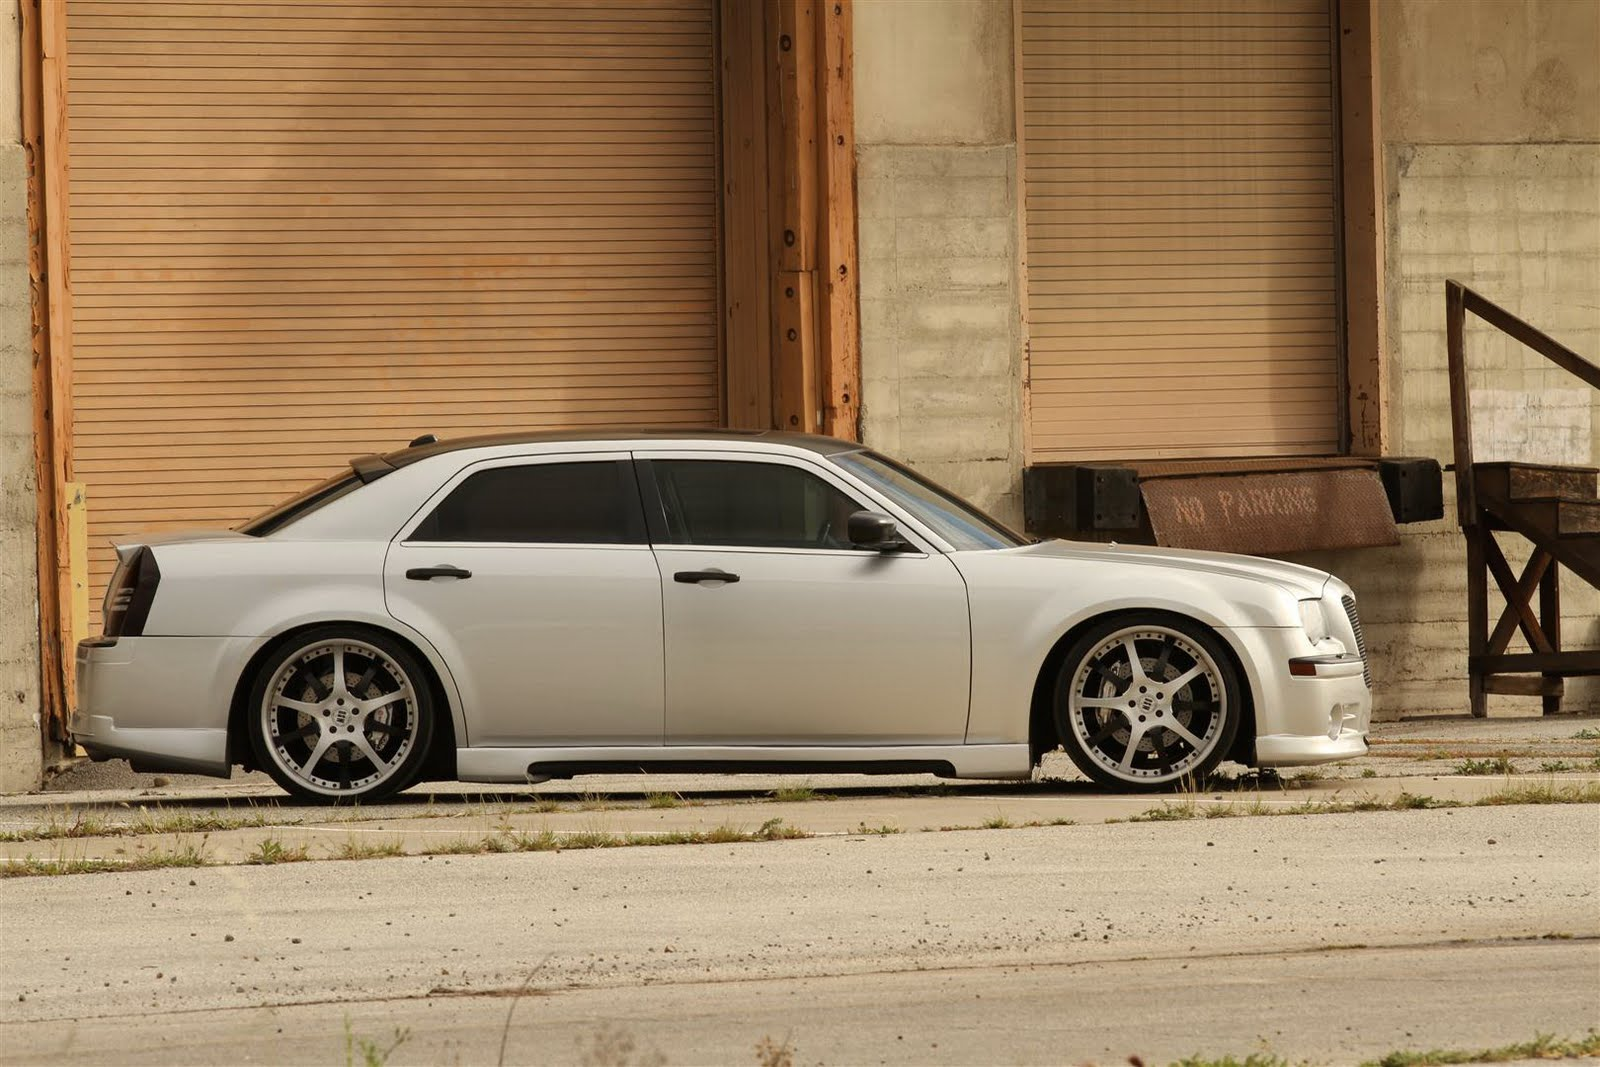 FatChance 2.0 Is the First Customized 2011 Chrysler 300 ...